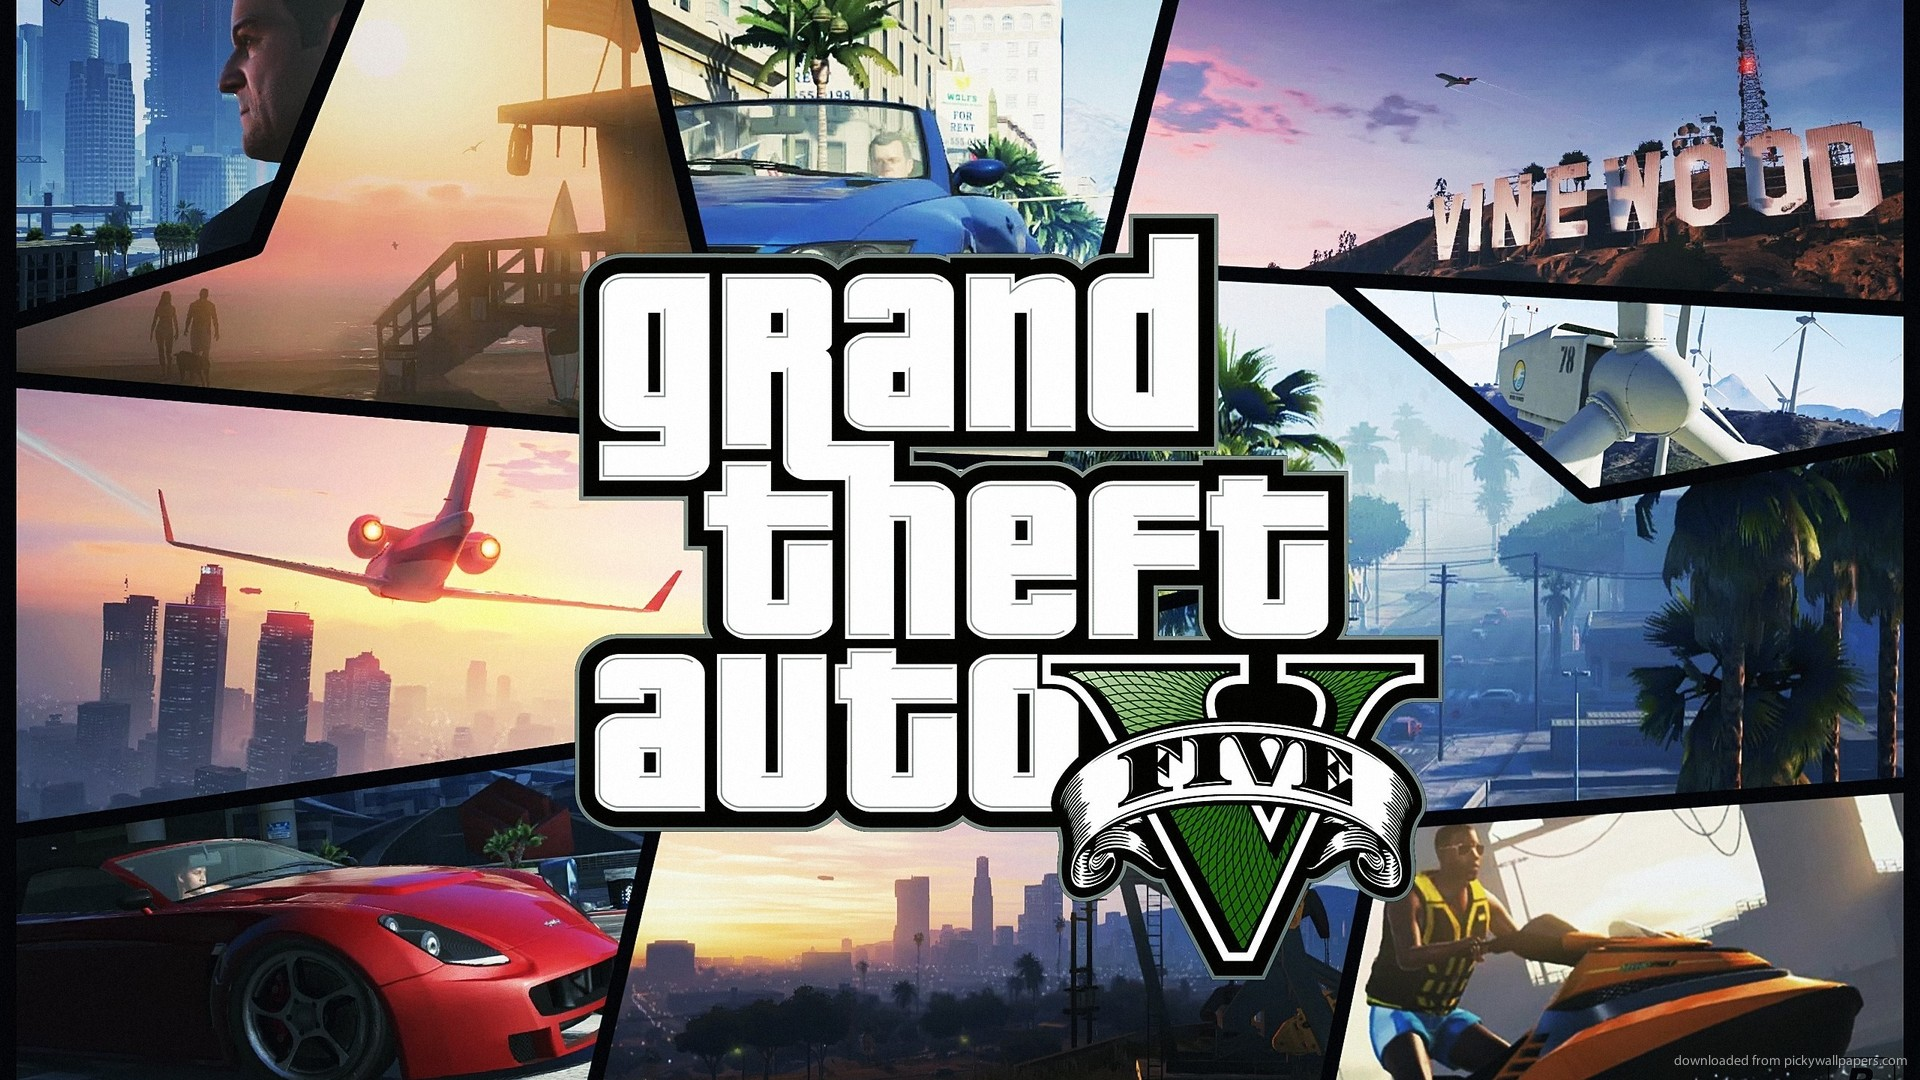 Gta v wallpaper 1920x1080 wallpapersafari - Gta v wallpaper ...